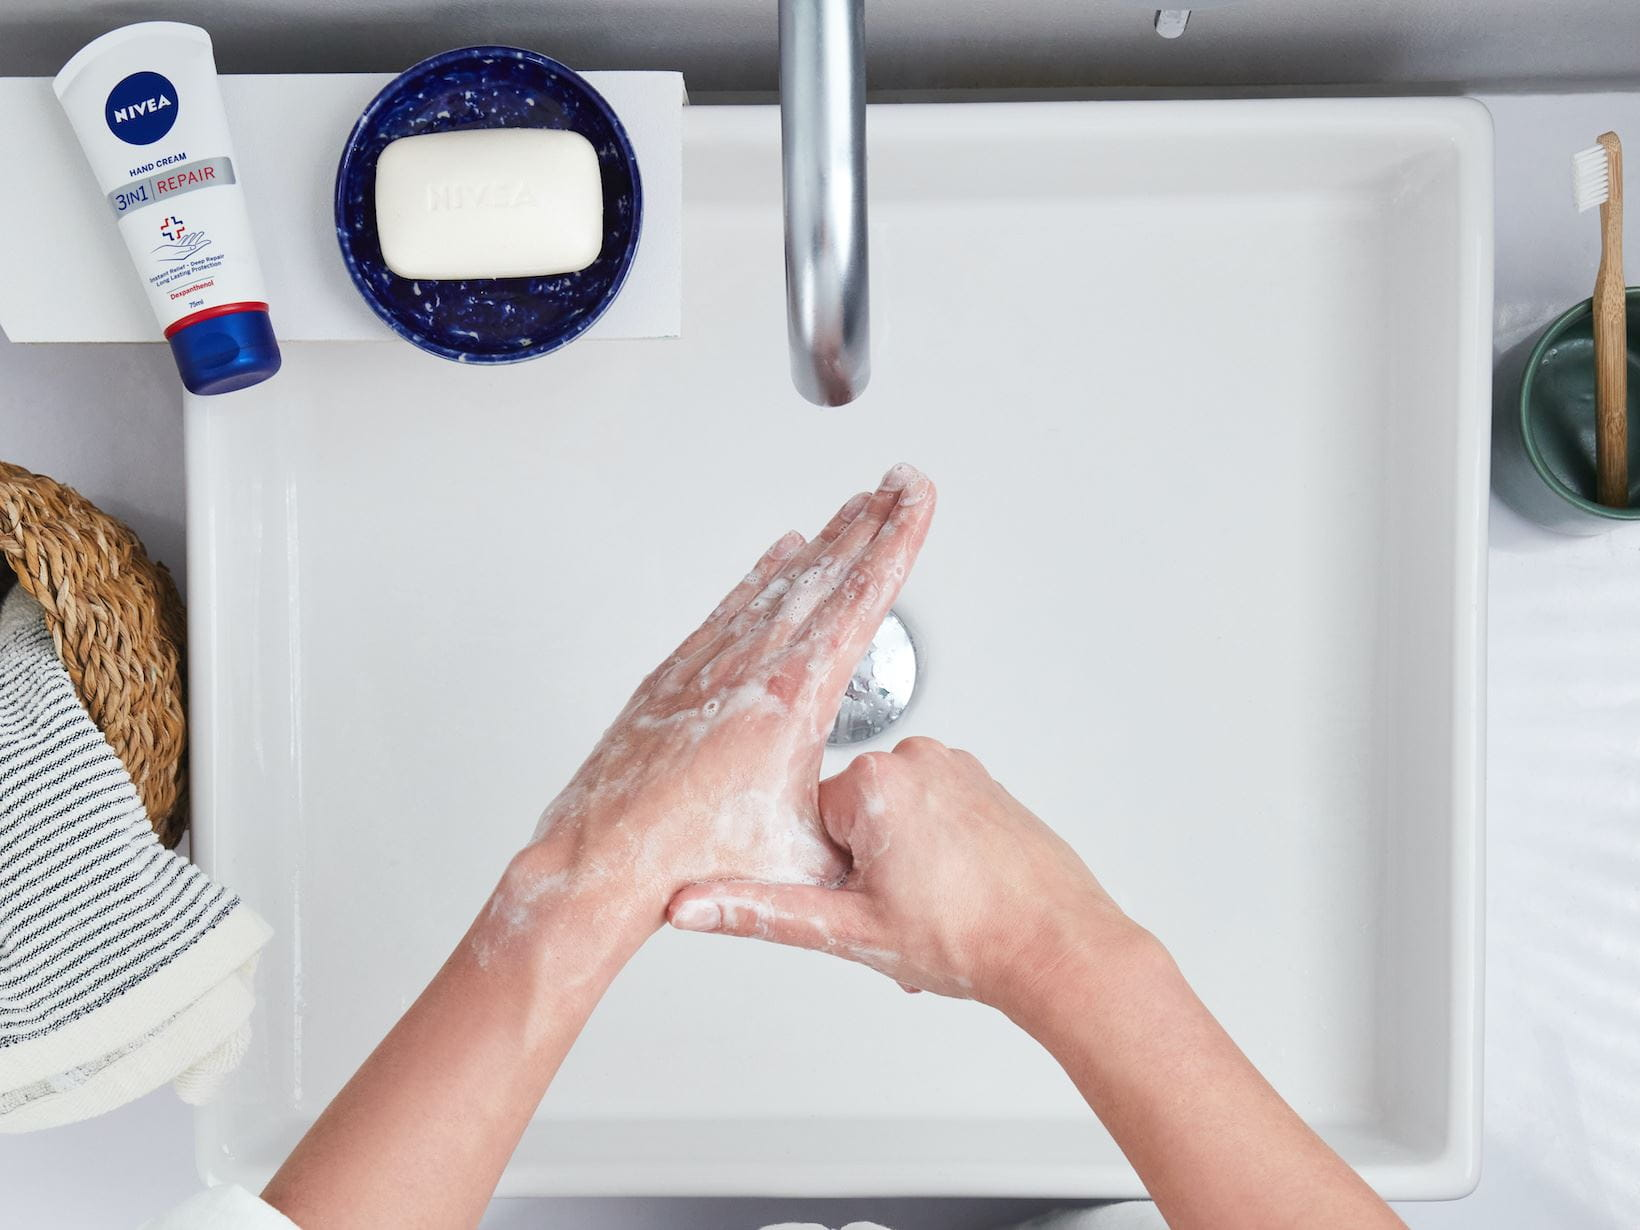 hands rubbing soap in between there fingers under a tap